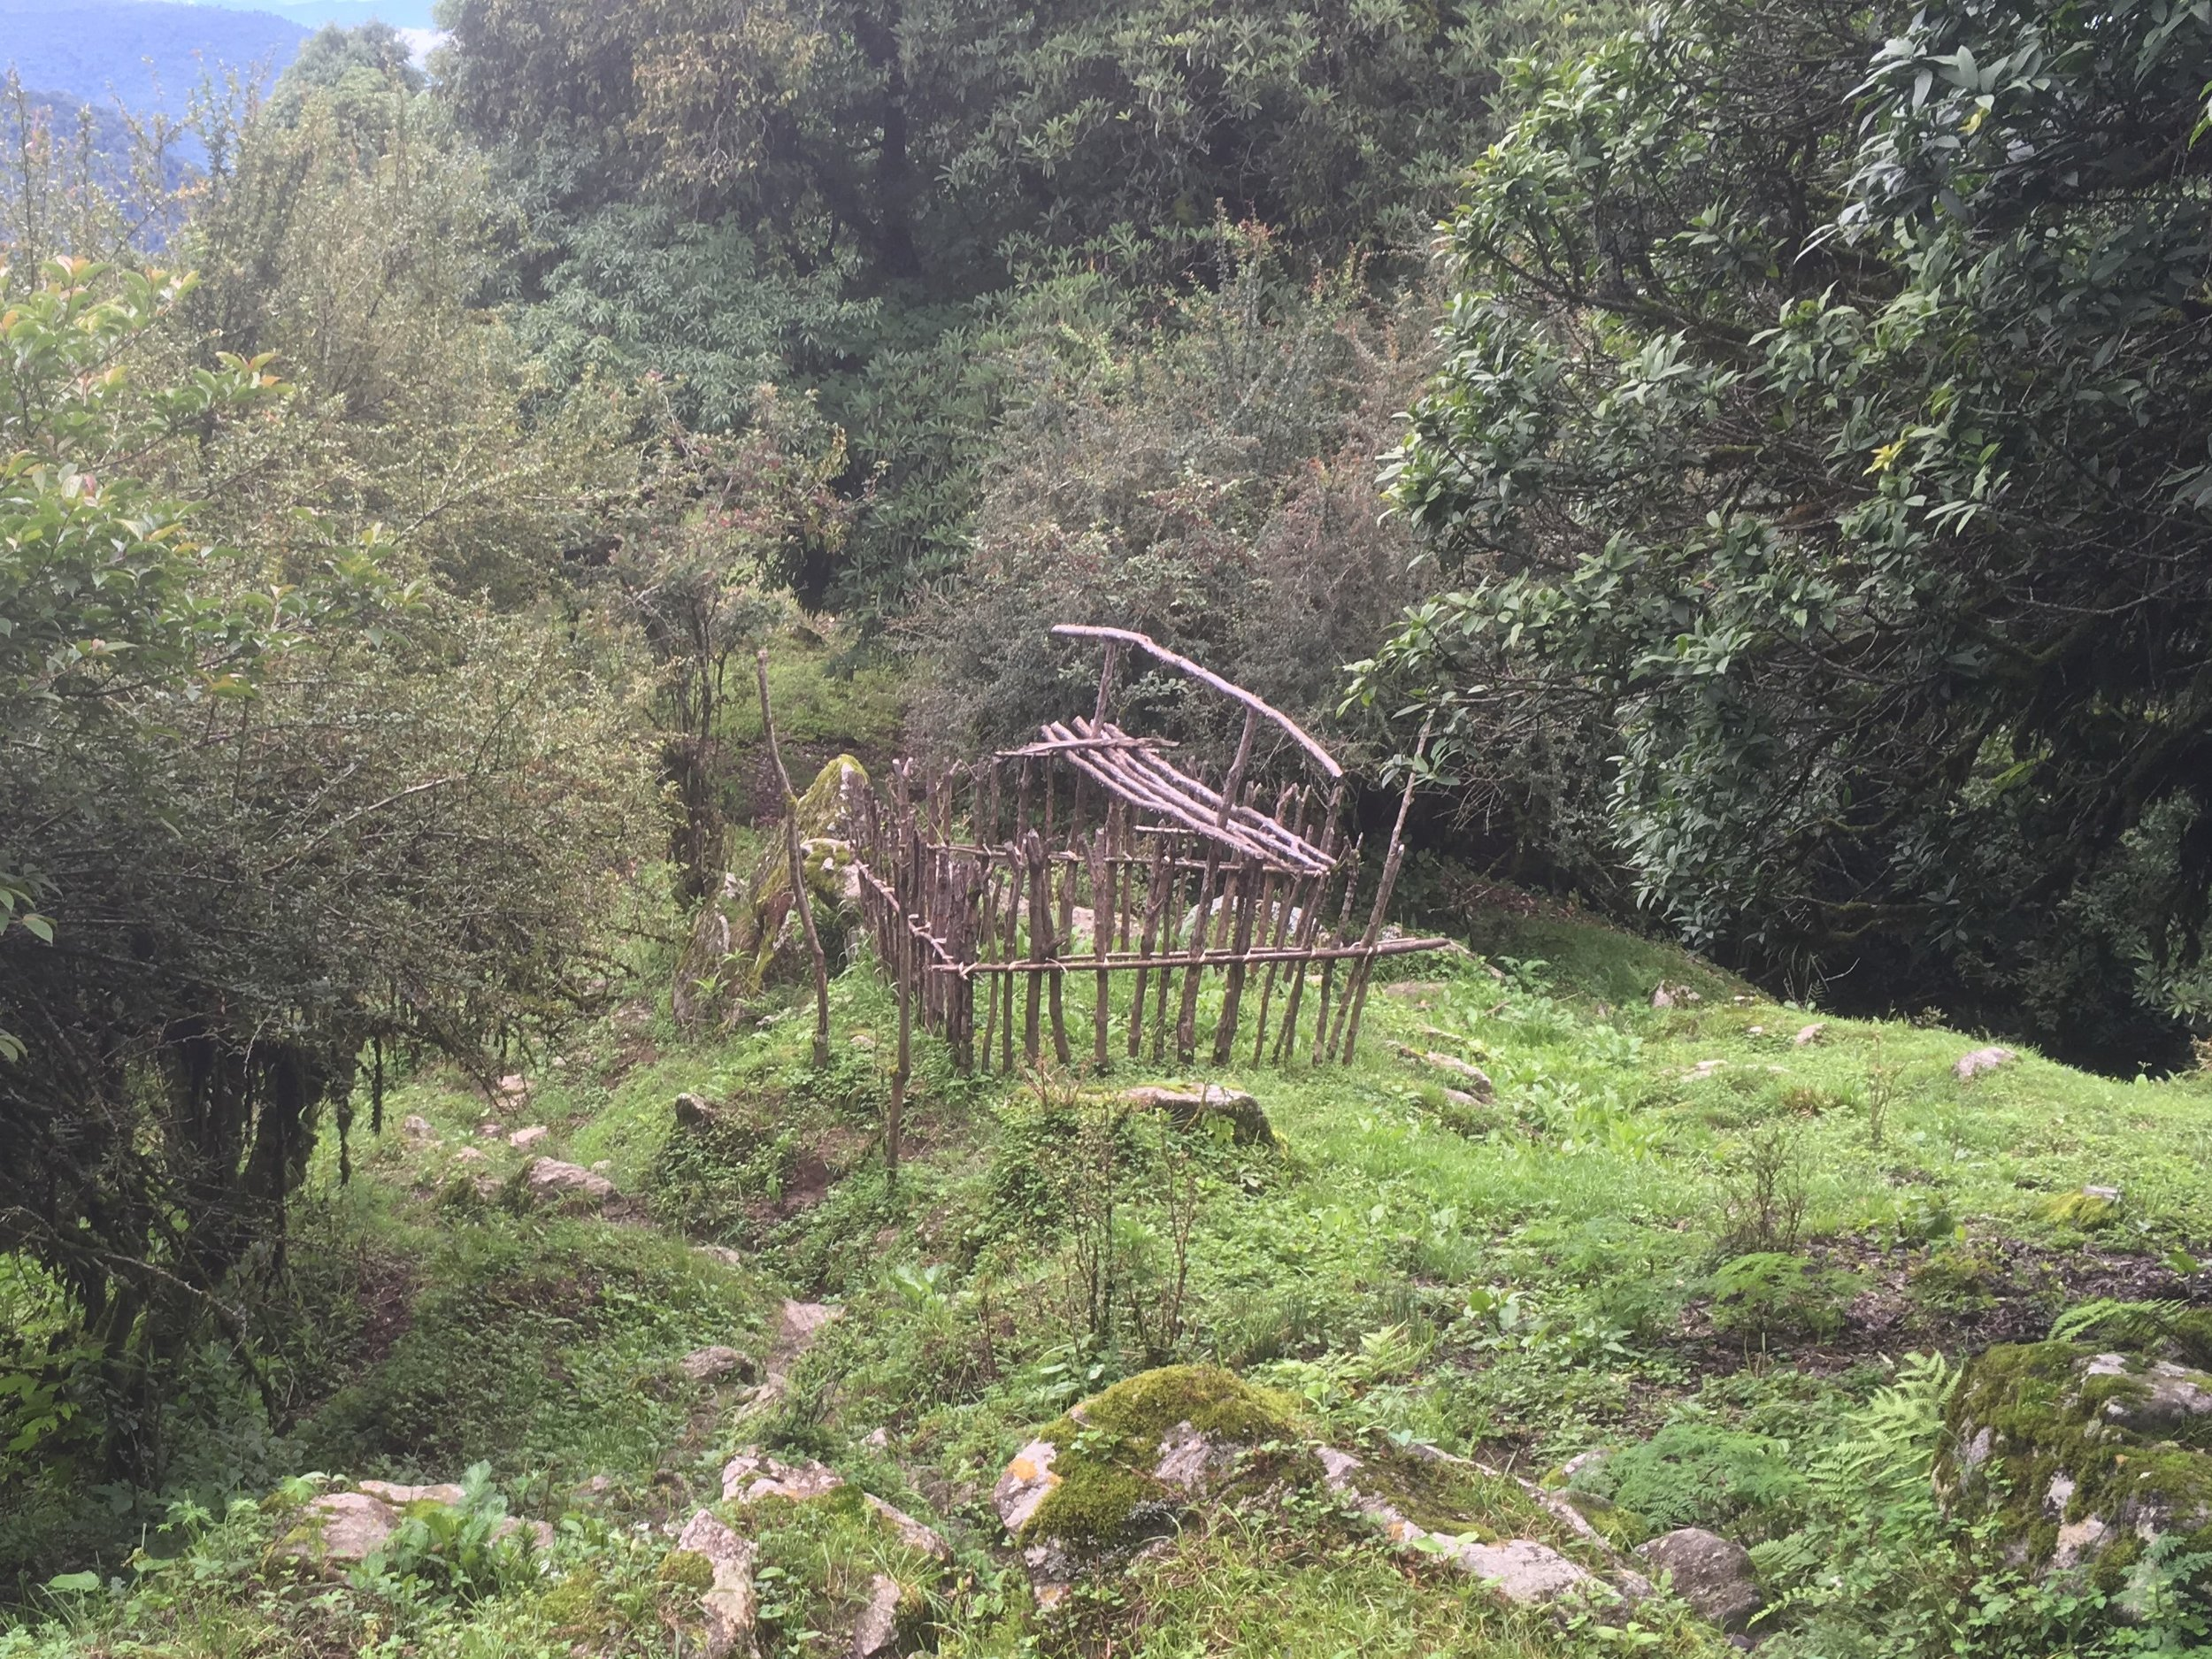 The skeletal remains of a hut very similar to the one we stayed in